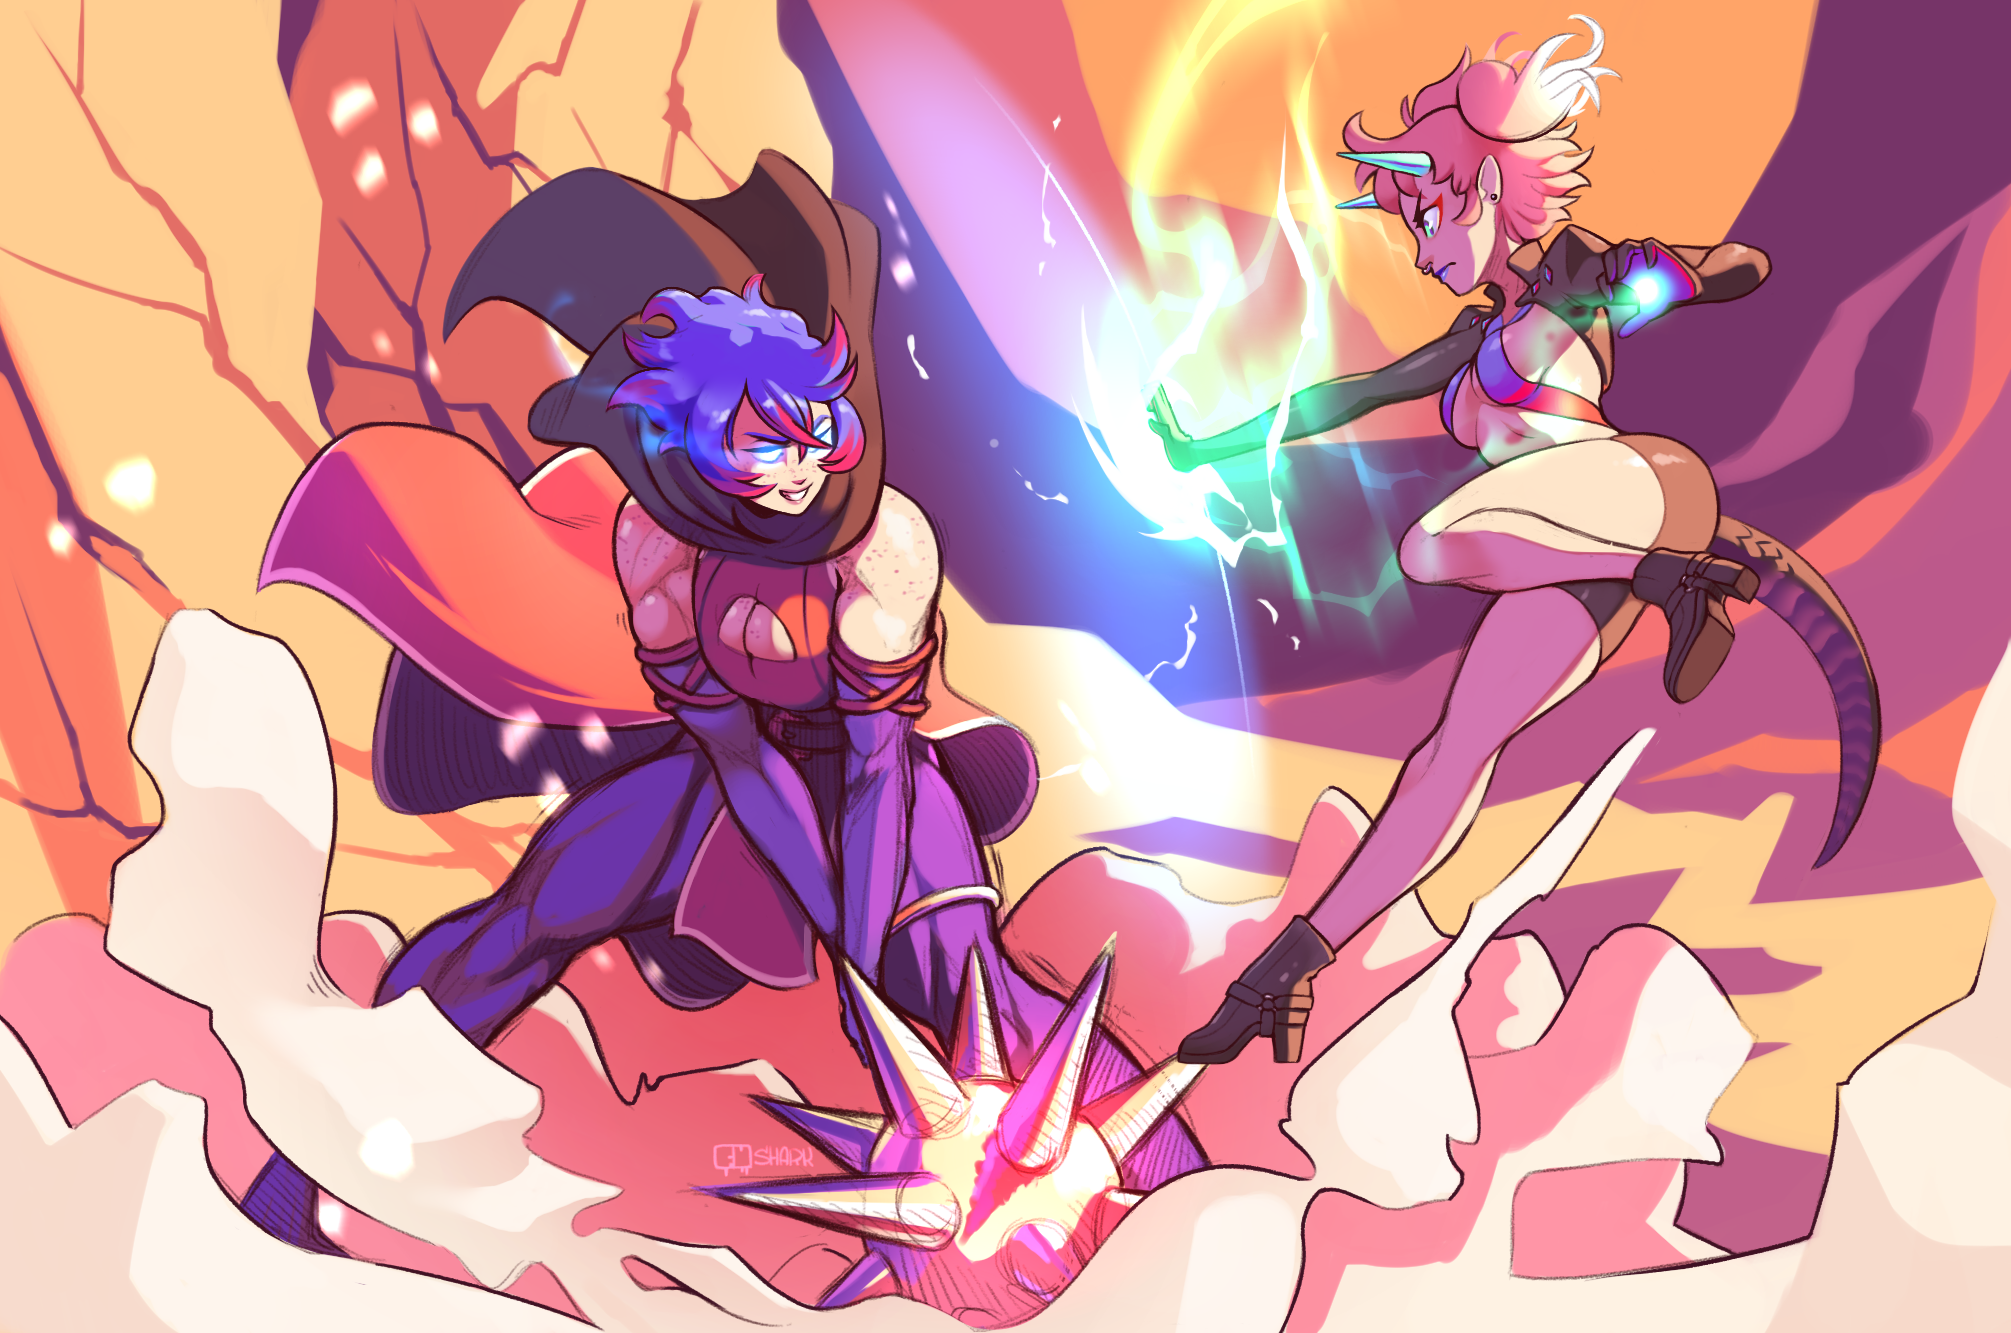 Commission-Cookies VS Flan